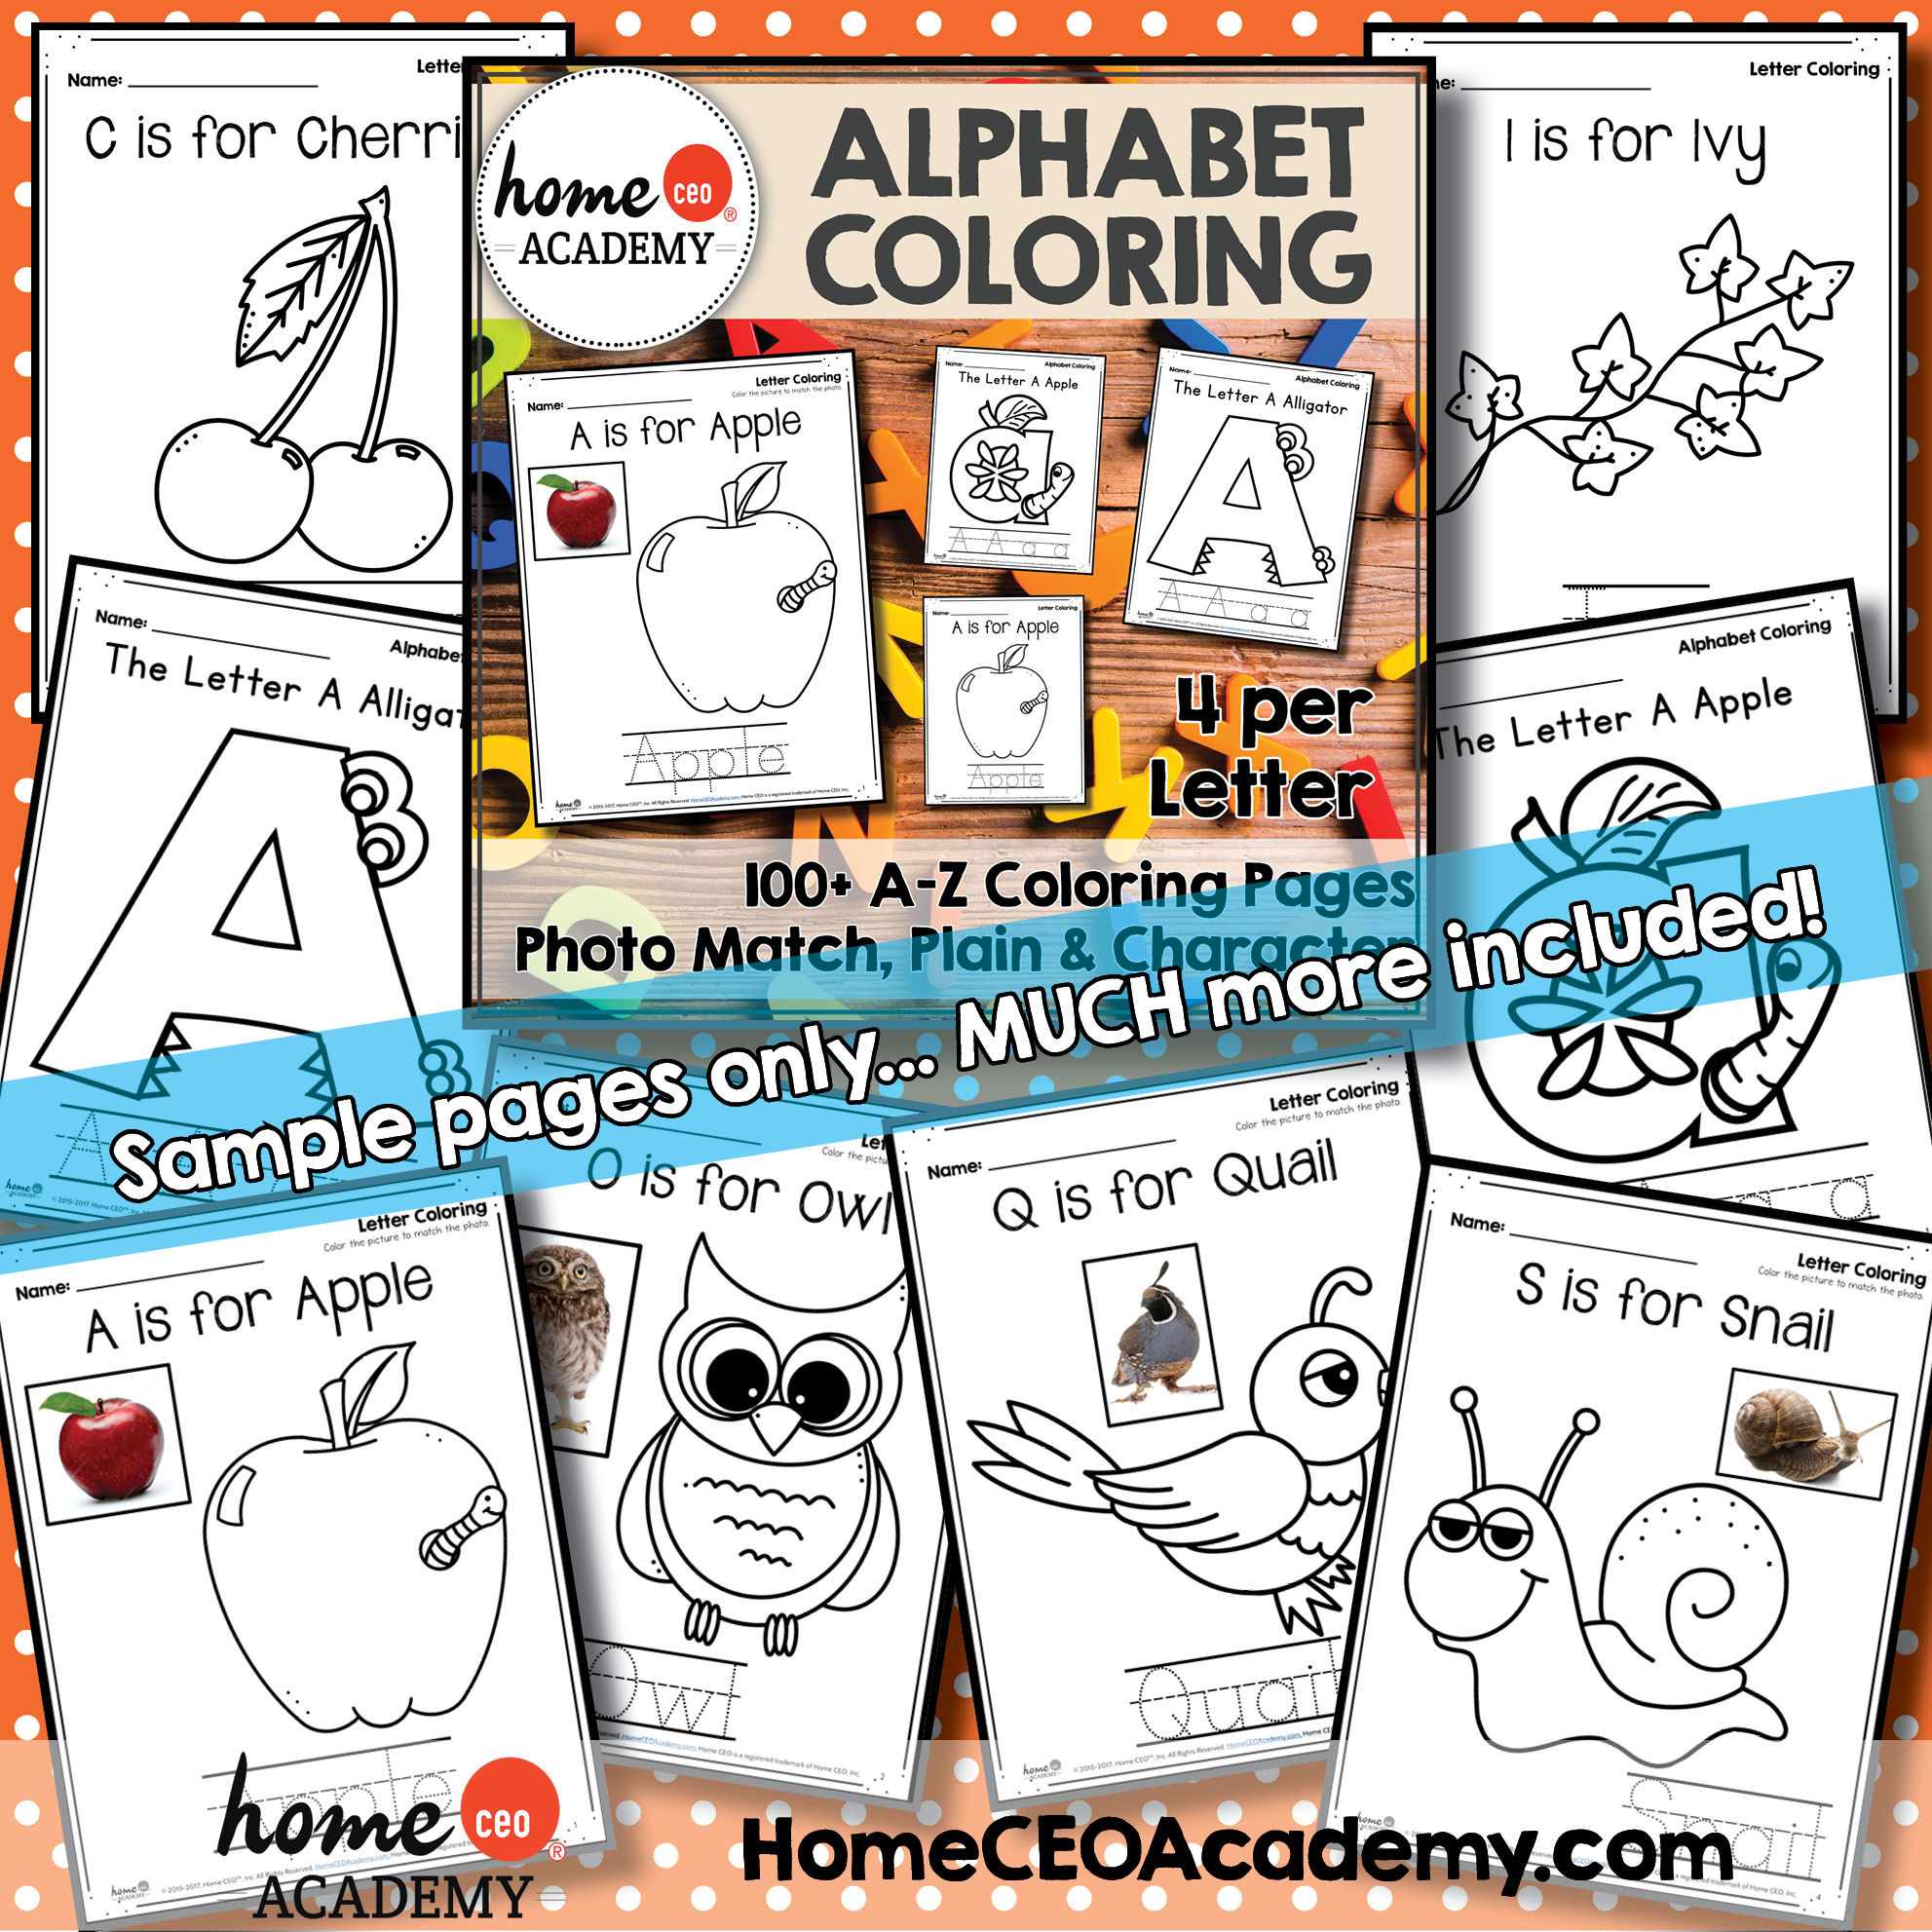 ALPHABET COLORING STYLES INCLUDED